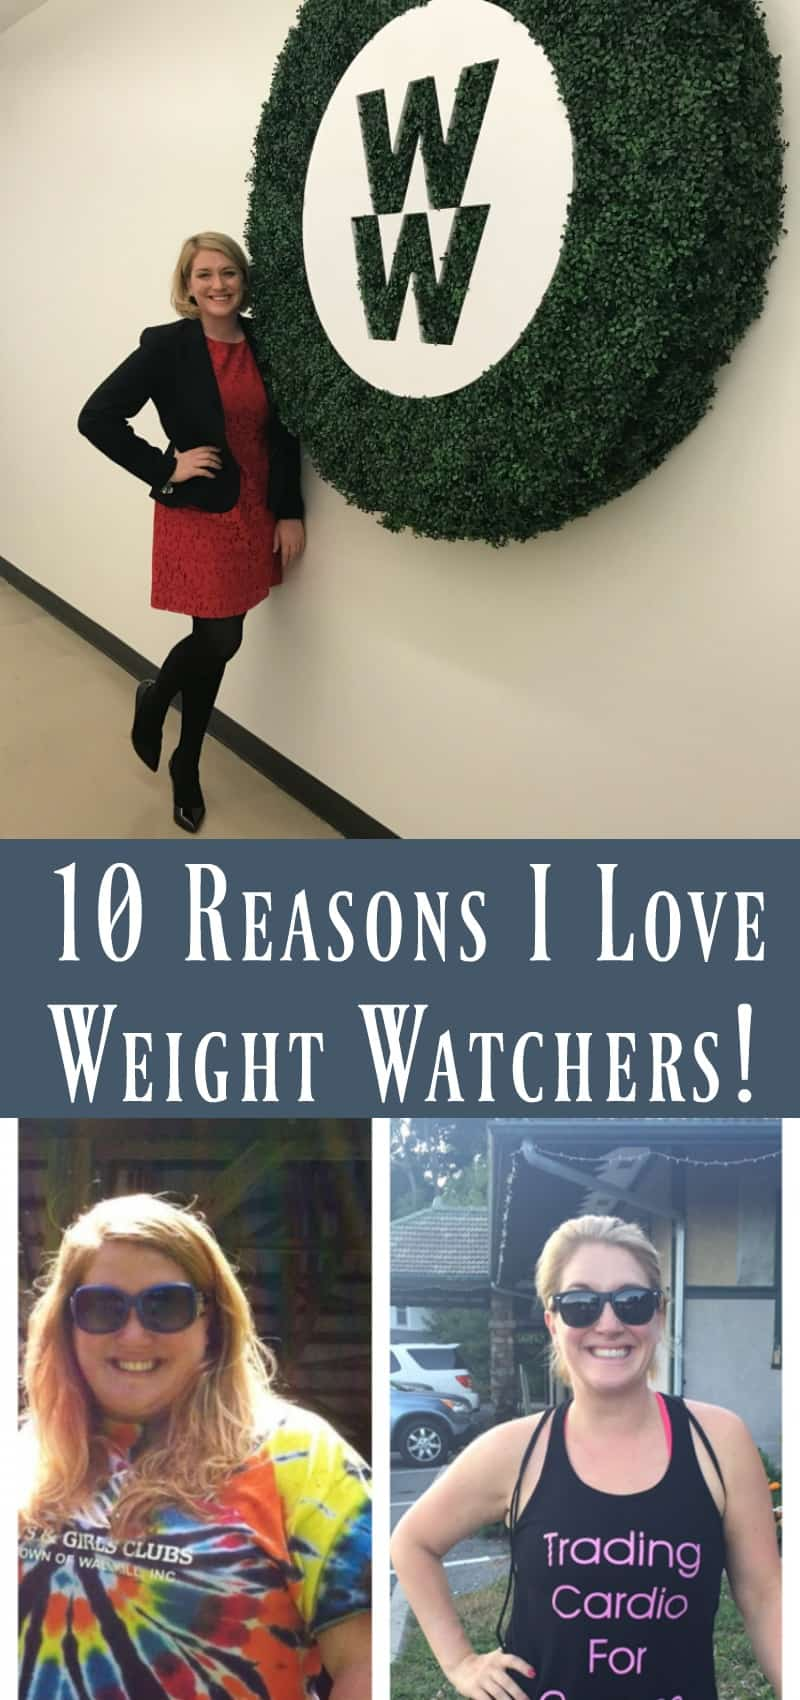 10 Reasons I Love Weight Watchers